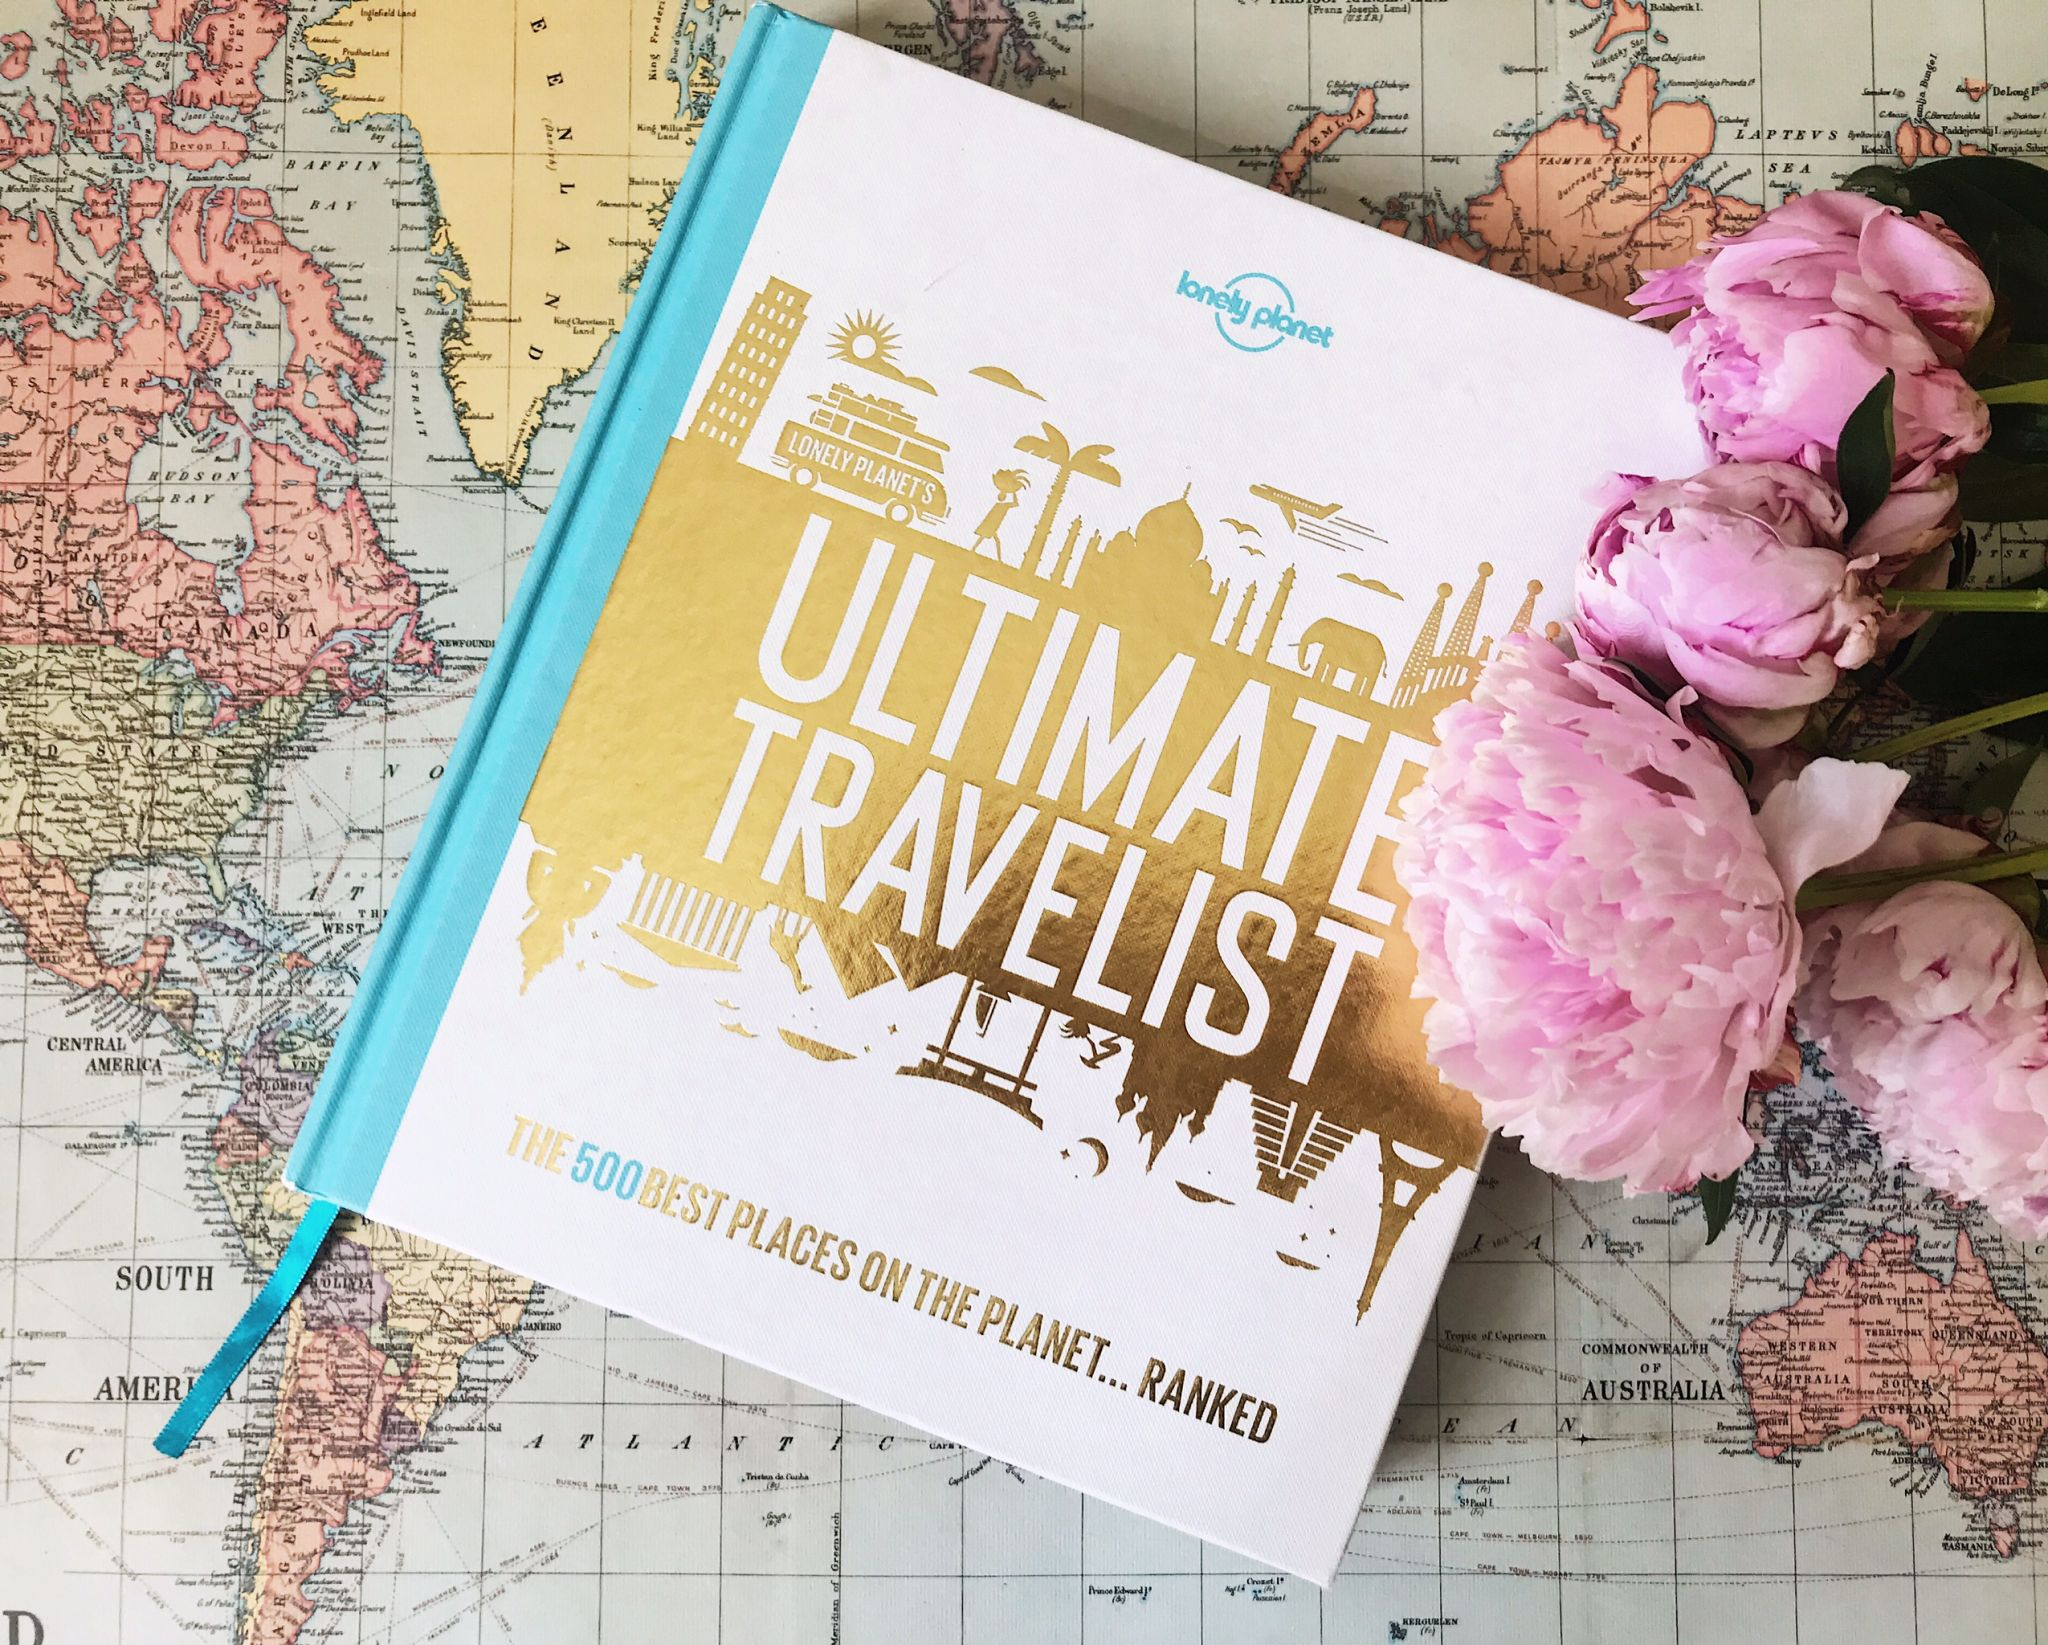 Image of the Ultimate travelist by Lonely Planet